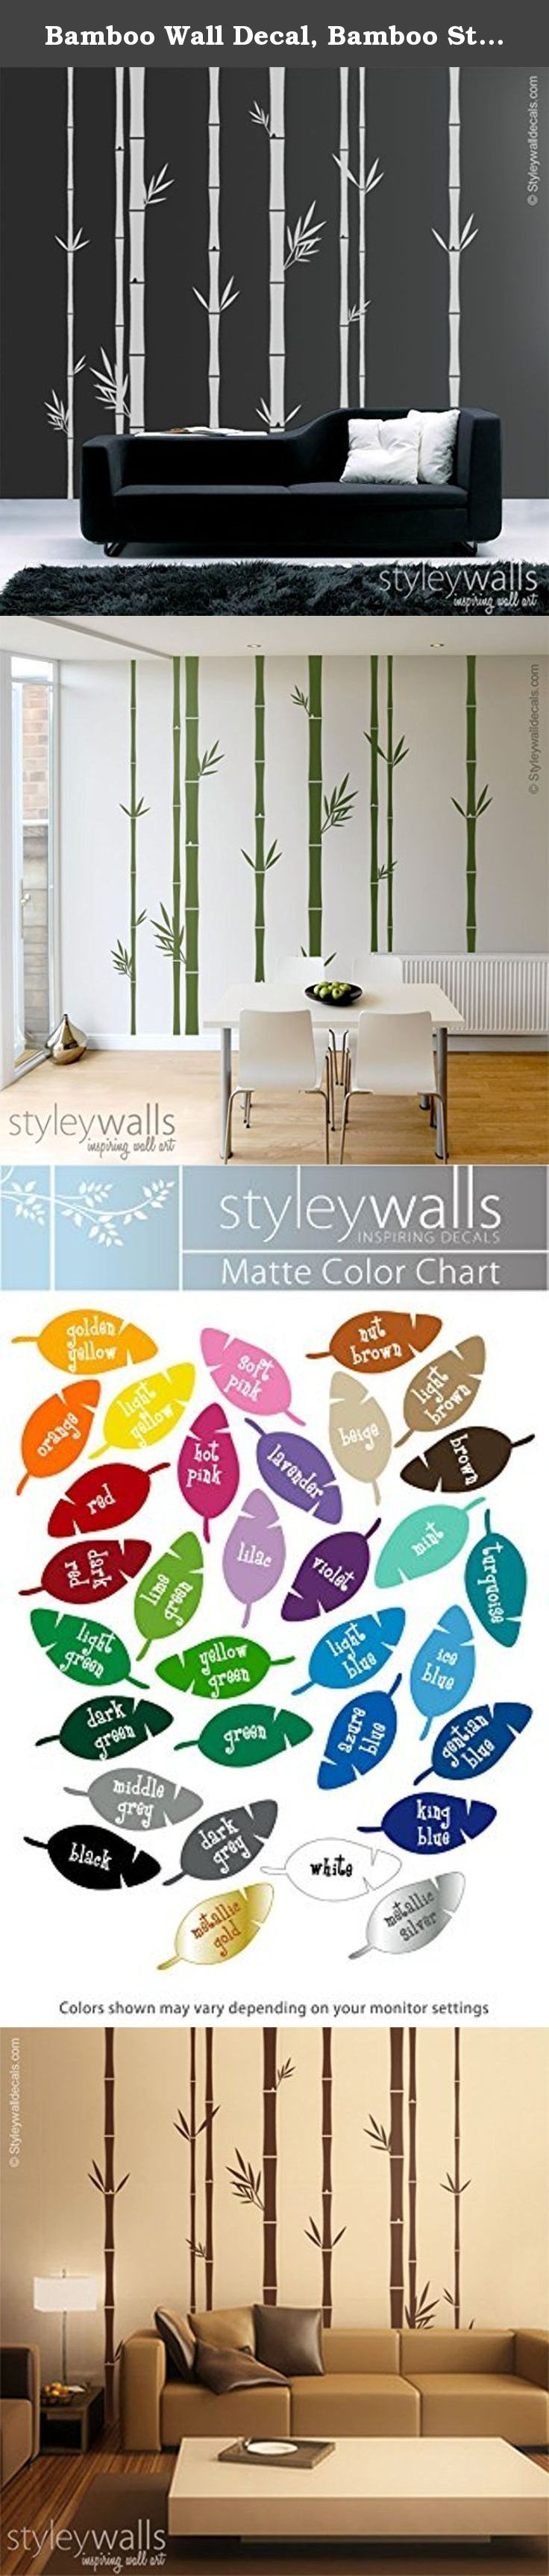 "Bamboo Wall Decal, Bamboo Stalks Wall Decal, Bamboo Wall Sticker for Home Decor Living Room Decor. This set of 8 Bamboo Stalks decal measures 100"" wide by 100"" high comes with leaves as shown on the picture. The decal pack includes 8 bamboo stalks measuring: -2 stalks x 1.2"" wide -2 stalks x 1.8"" wide -2 stalks x 2.4"" wide -2 stalks x 3.5"" wide The stalks and leaves will come in separate pieces. You can rearrange them to fit your space. Each bamboo stalk is divided in 50"" sections for…"